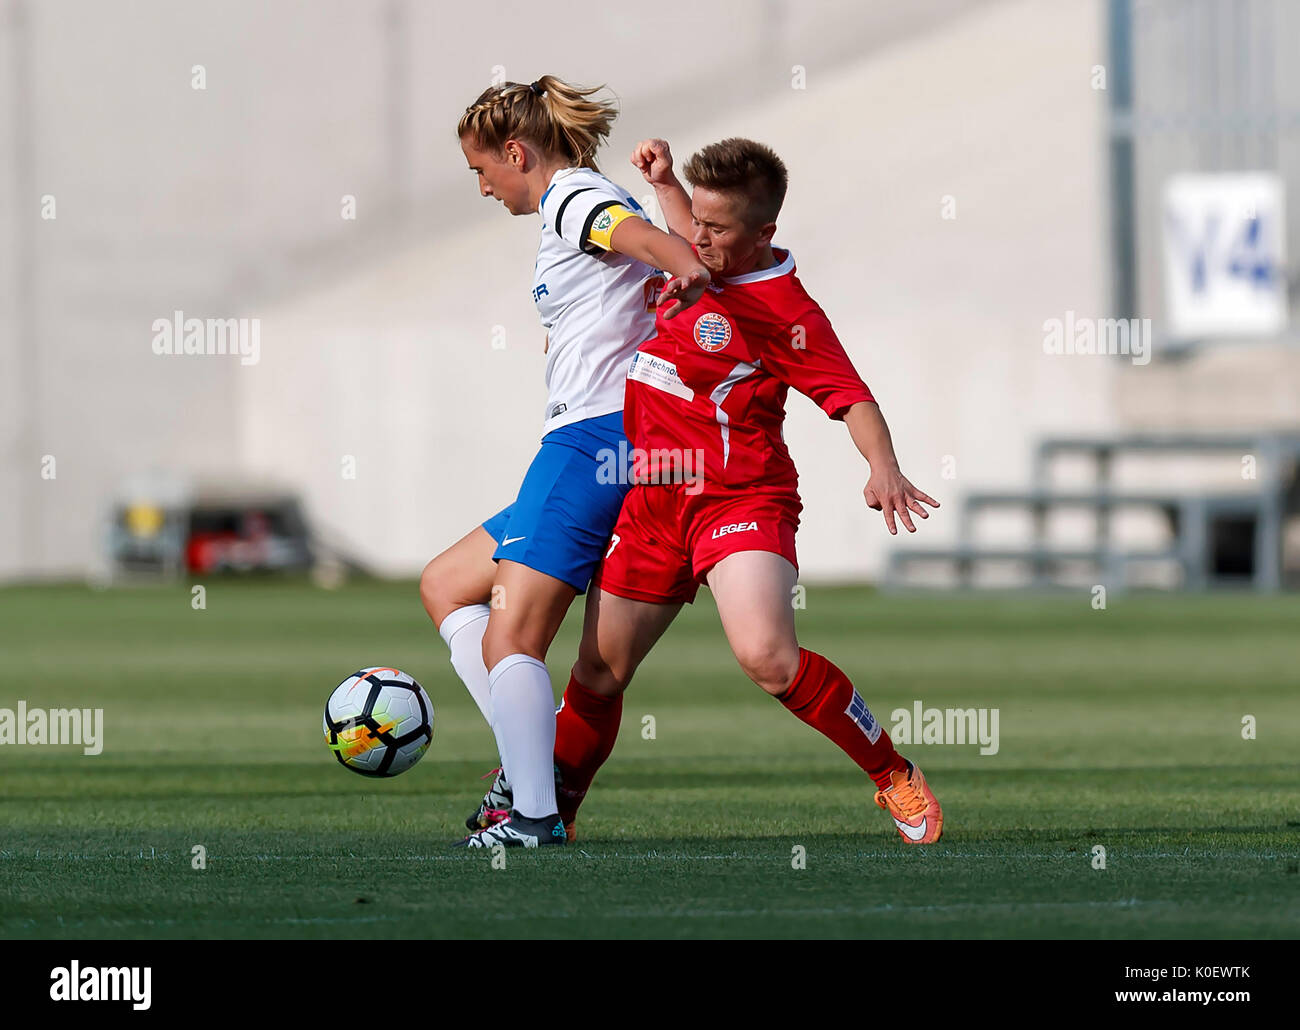 BUDAPEST, HUNGARY - AUGUST 22: Anita Pinczi (L) of MTK Hungaria FC competes for the ball with Qendresa Bajra (R) of WFC Hajvalia during the UEFA Women's Champions League Qualifying match between MTK Hungaria FC and WFC Hajvalia at Nandor Hidegkuti Stadium on August 22, 2017 in Budapest, Hungary. - Stock Image